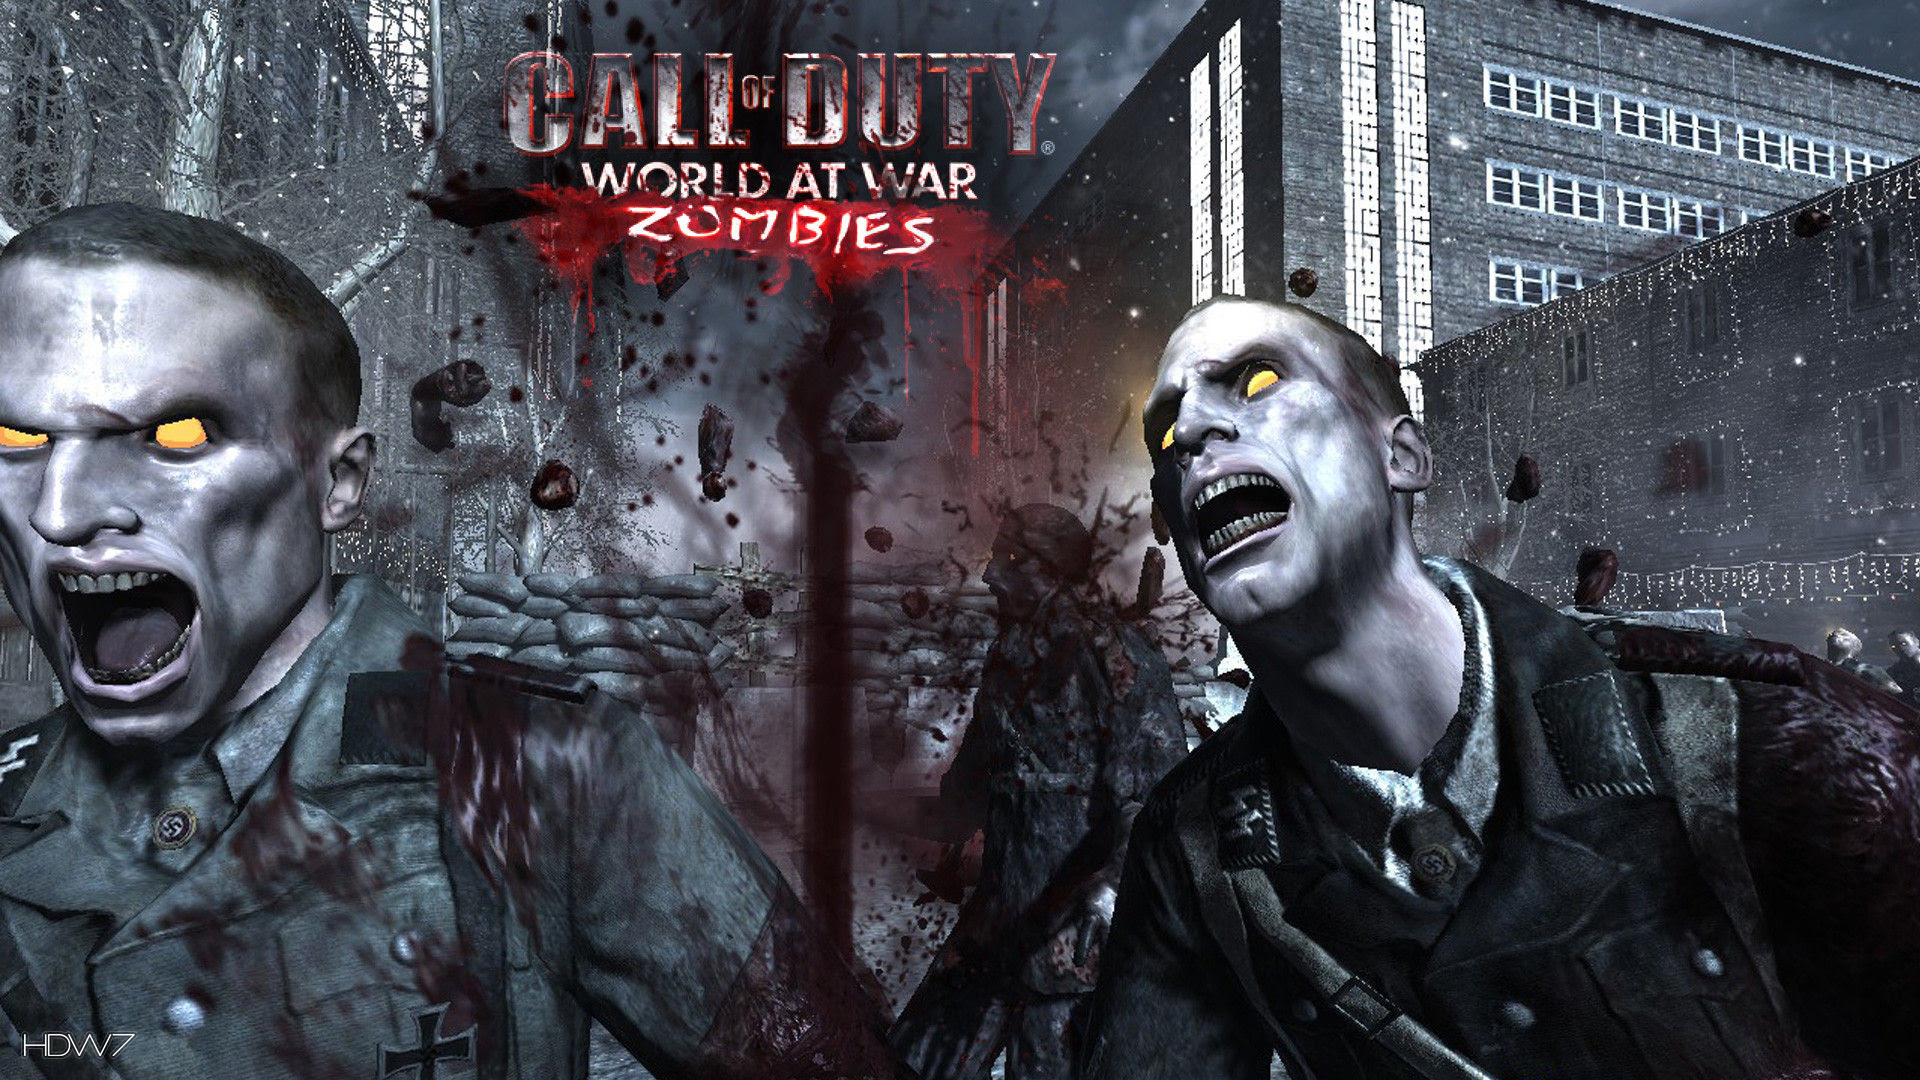 Call Of Duty World At War Zombies Game Hd Wallpaper Gallery 231